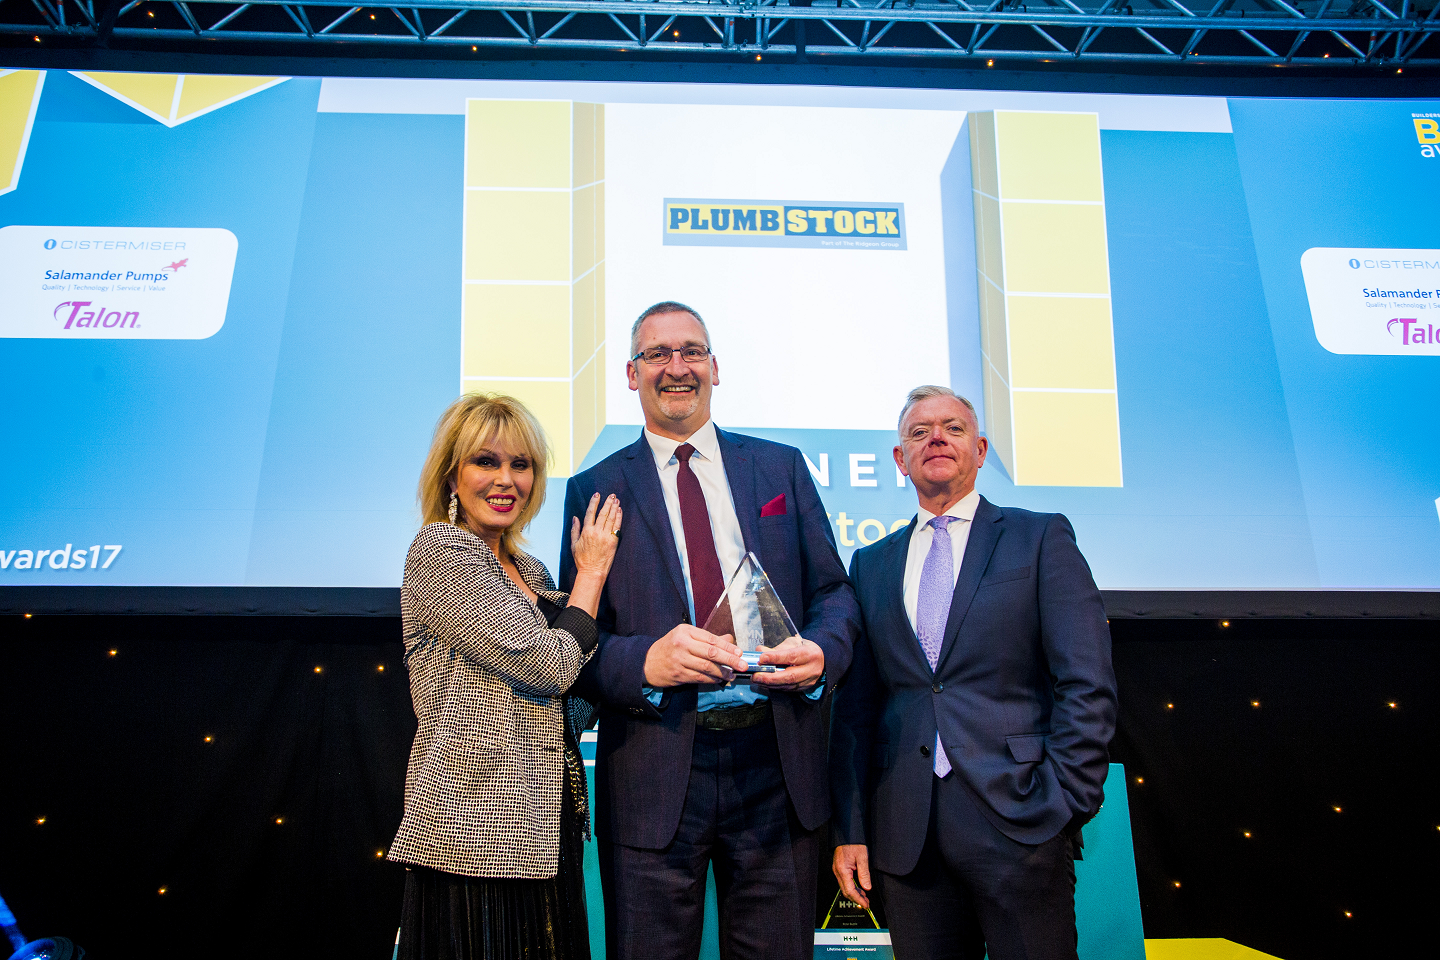 Winner of Heating & Plumbing Merchant of the Year; Joanna Lumley, Hugh Guntrip, Director of Plumbstock,  Danny Hughes, Managing Director - Salamander Pumps